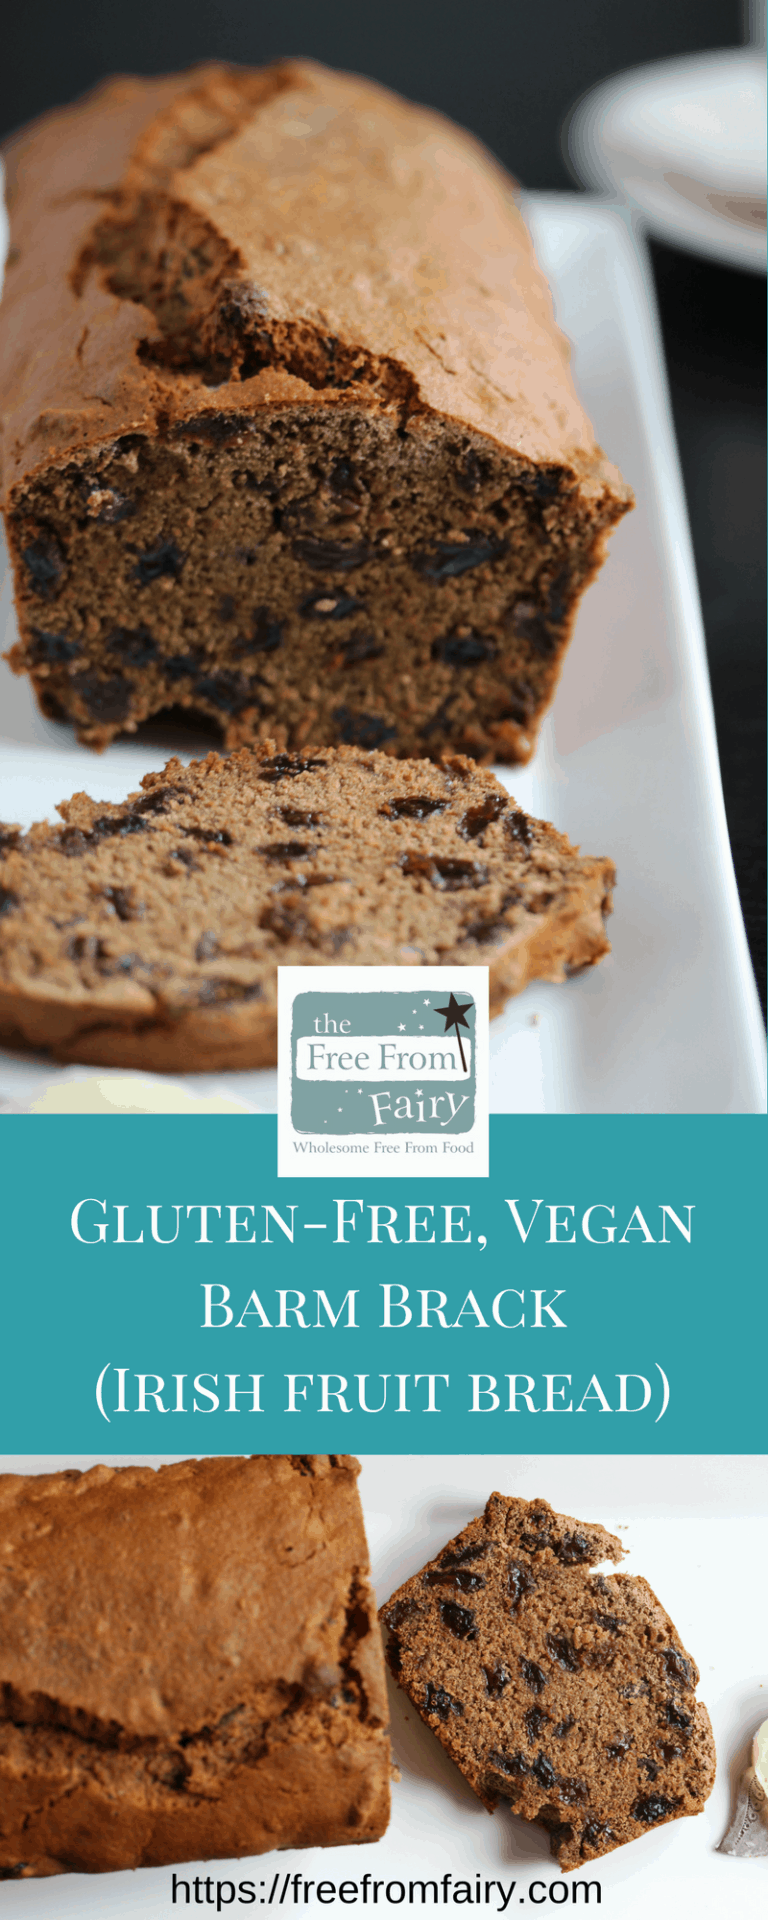 Gluten Free Tea Loaf Barmbrack Vegan The Free From Fairy Recipe In 2020 Gluten Free Afternoon Tea Food Tea Loaf